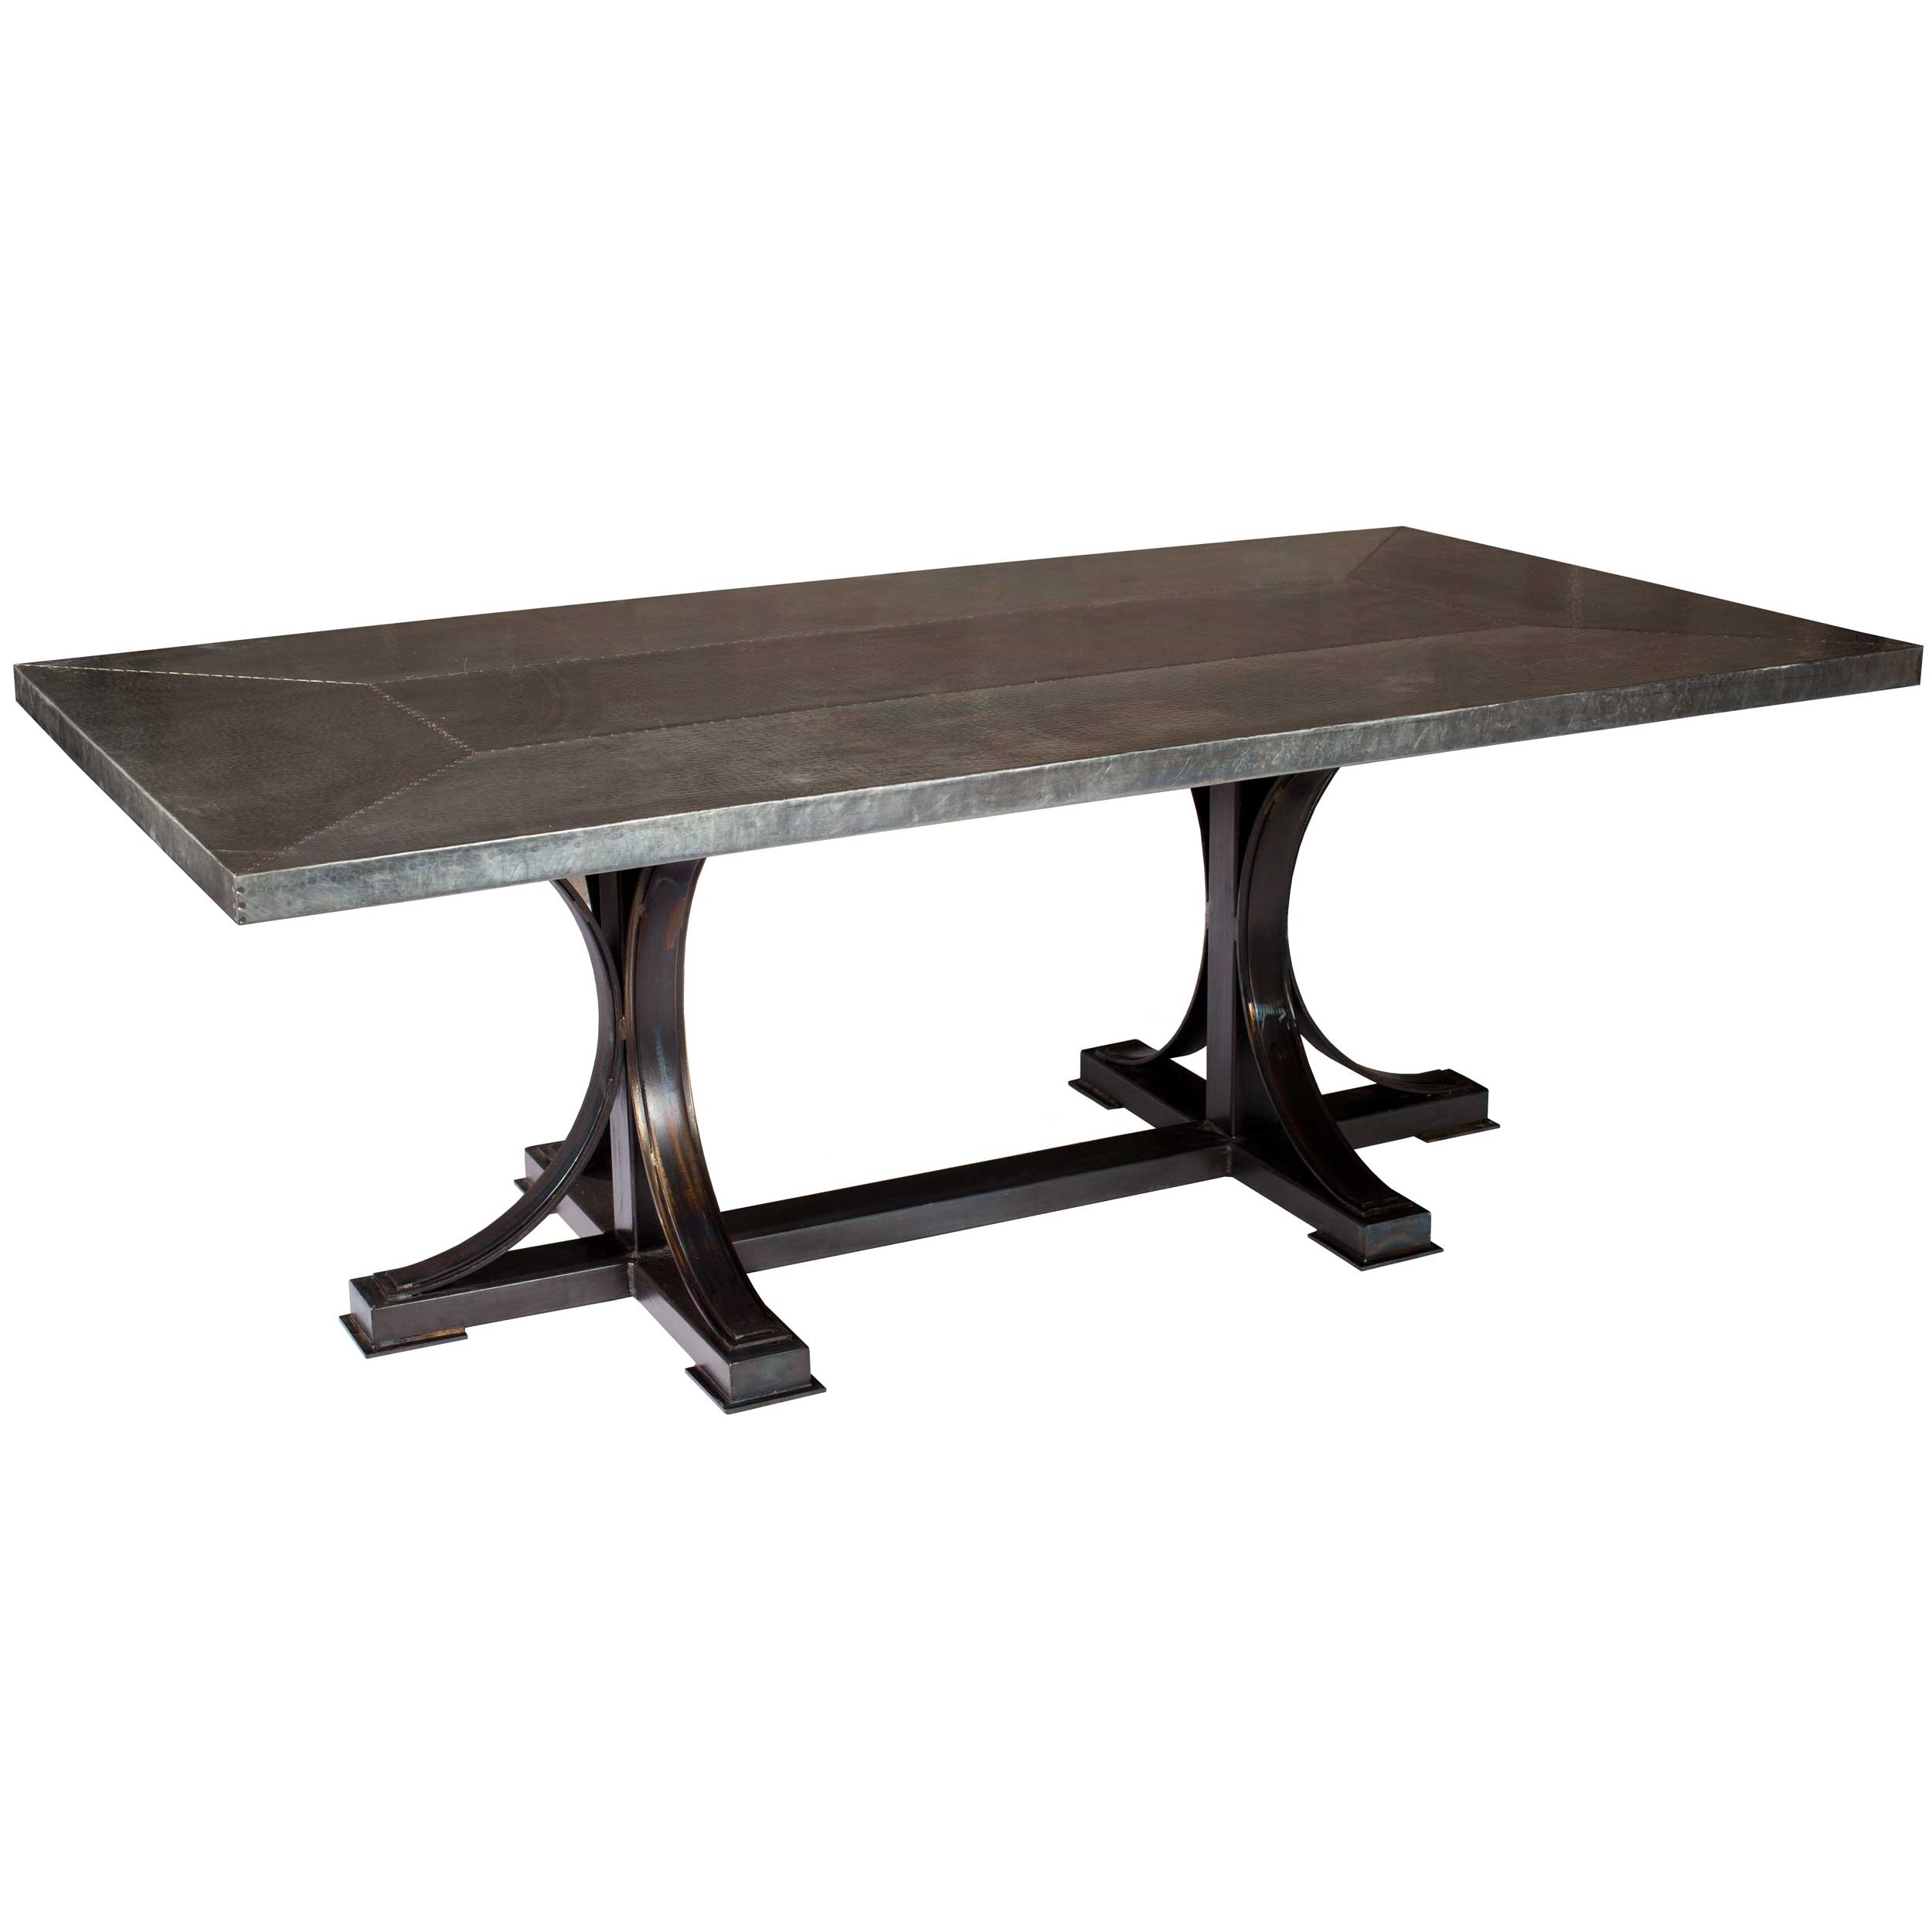 Winston 72quot x 44quot Dining Table with Rectangle Zinc Top : TWI PM 2M5 F 553B 2 from www.timelesswroughtiron.com size 2500 x 2500 jpeg 420kB